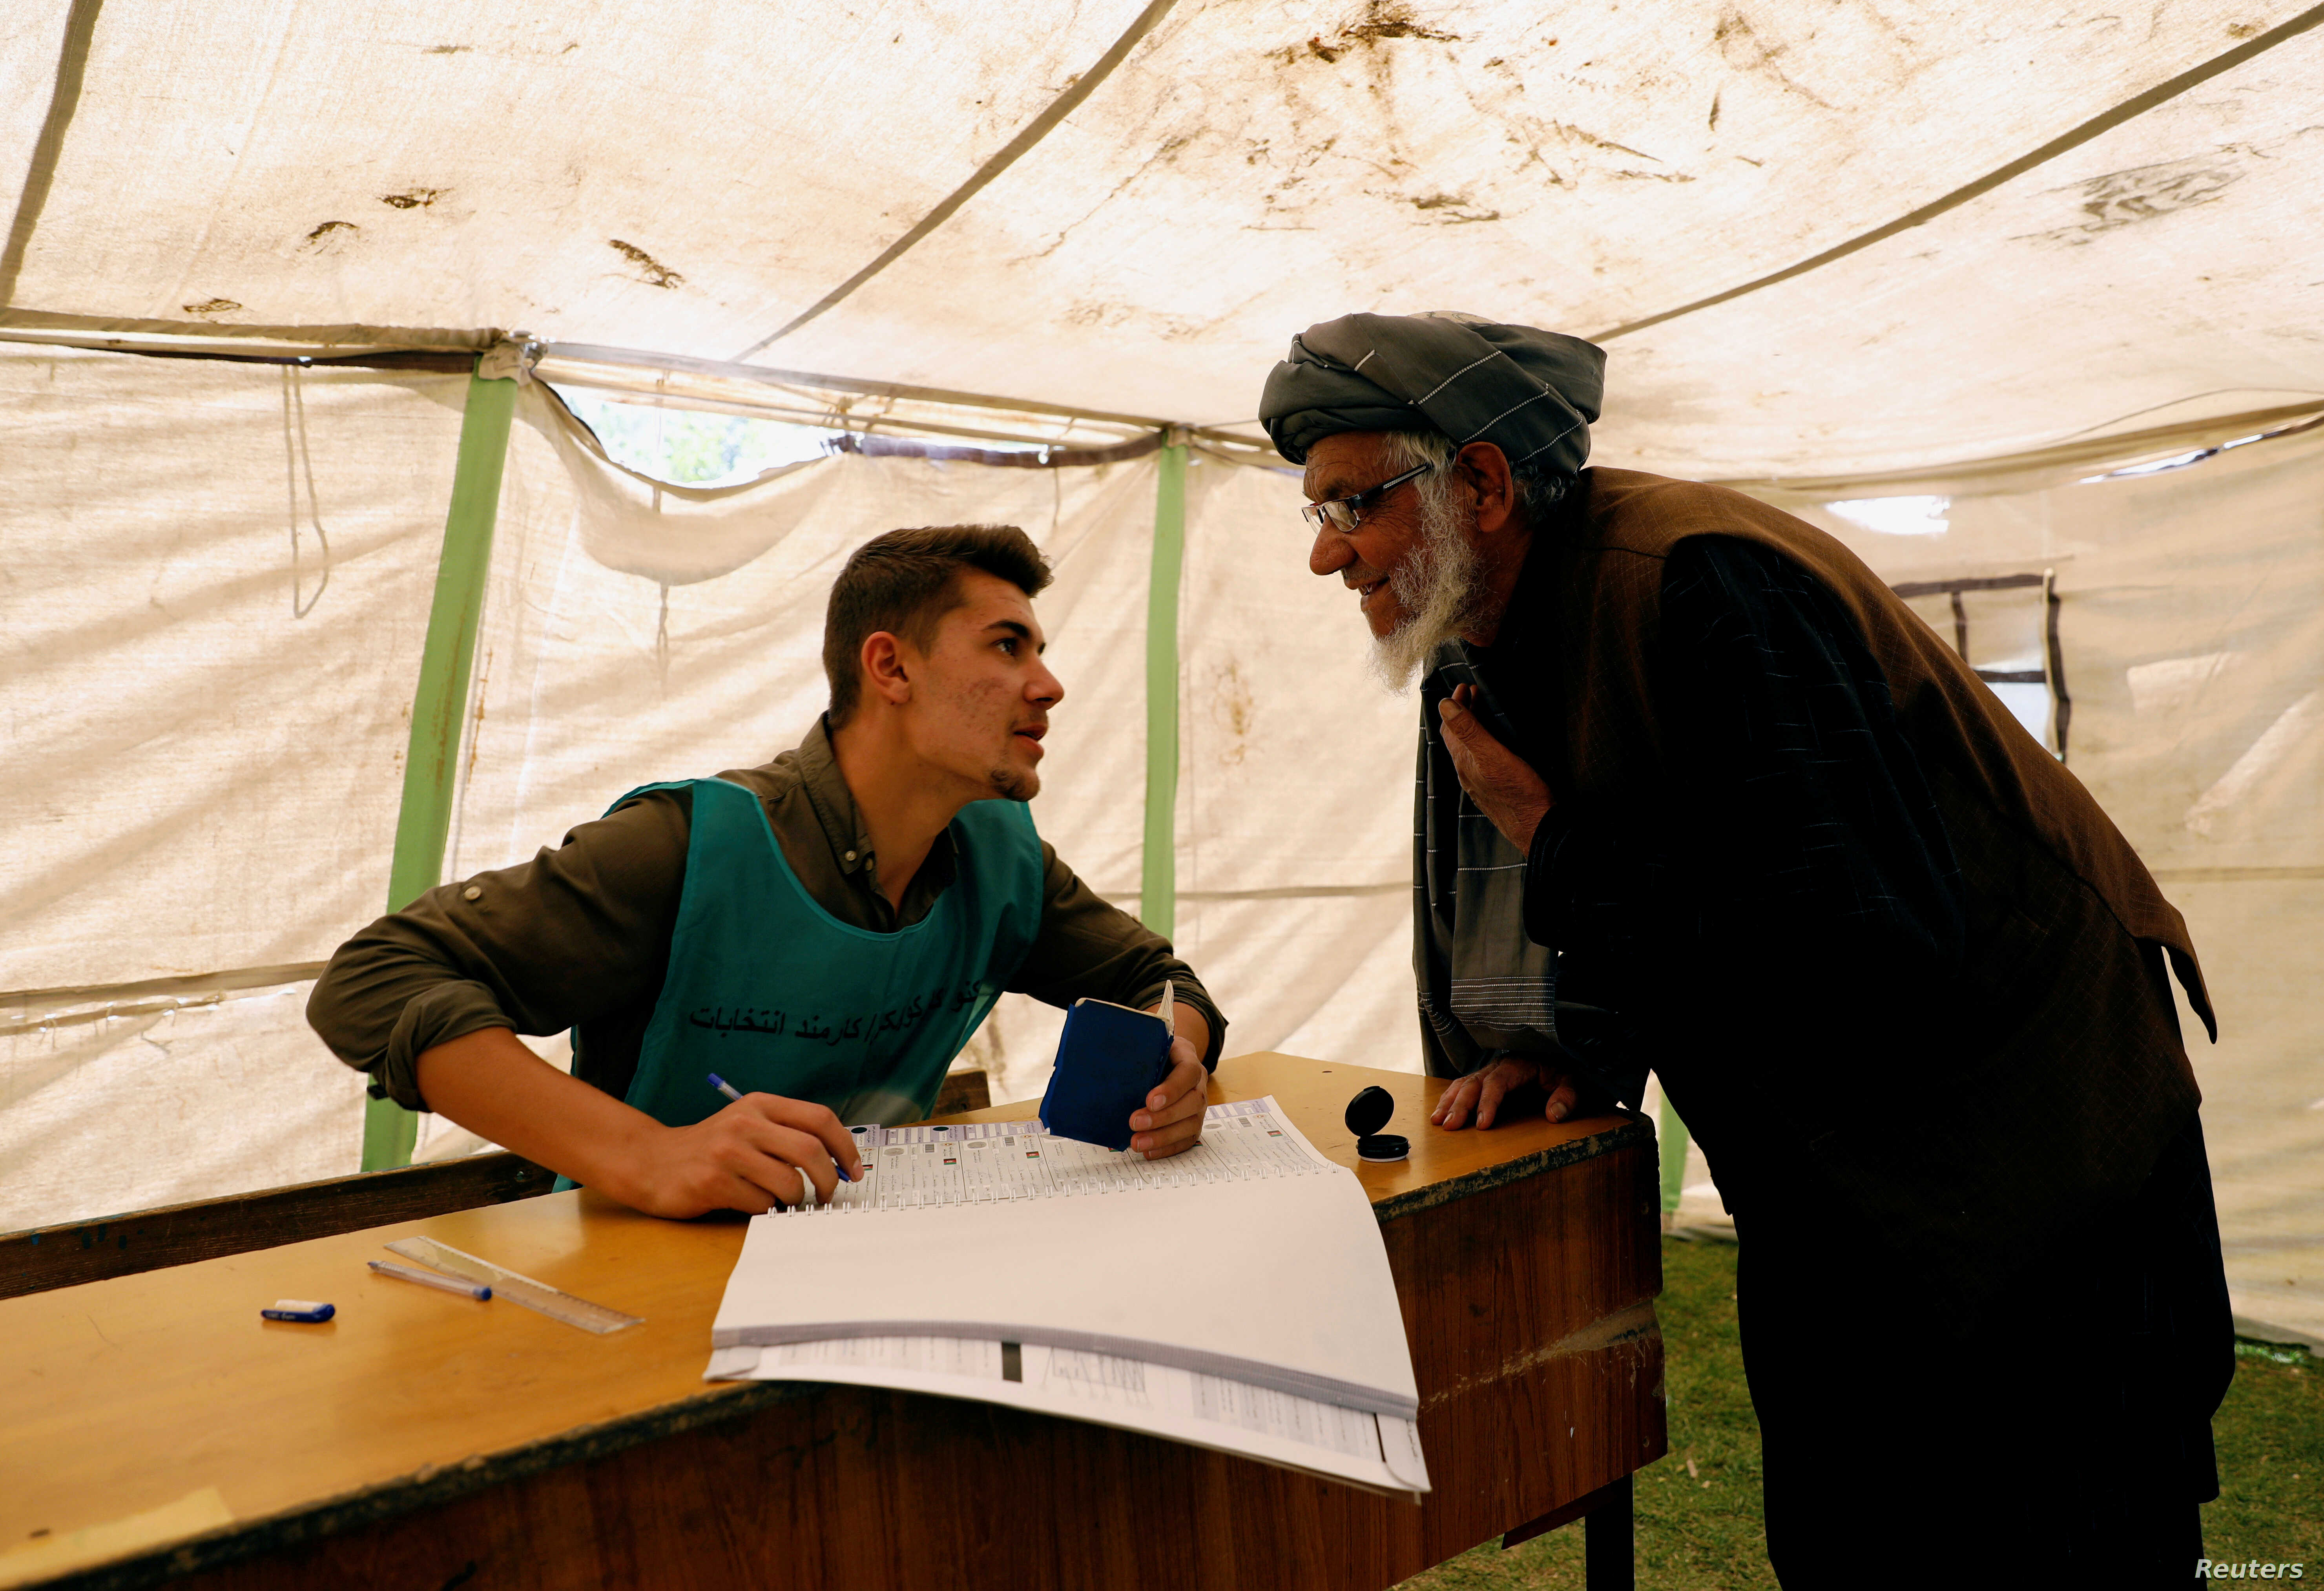 Fears of Low Voter Turnout in Afghanistan Over Security